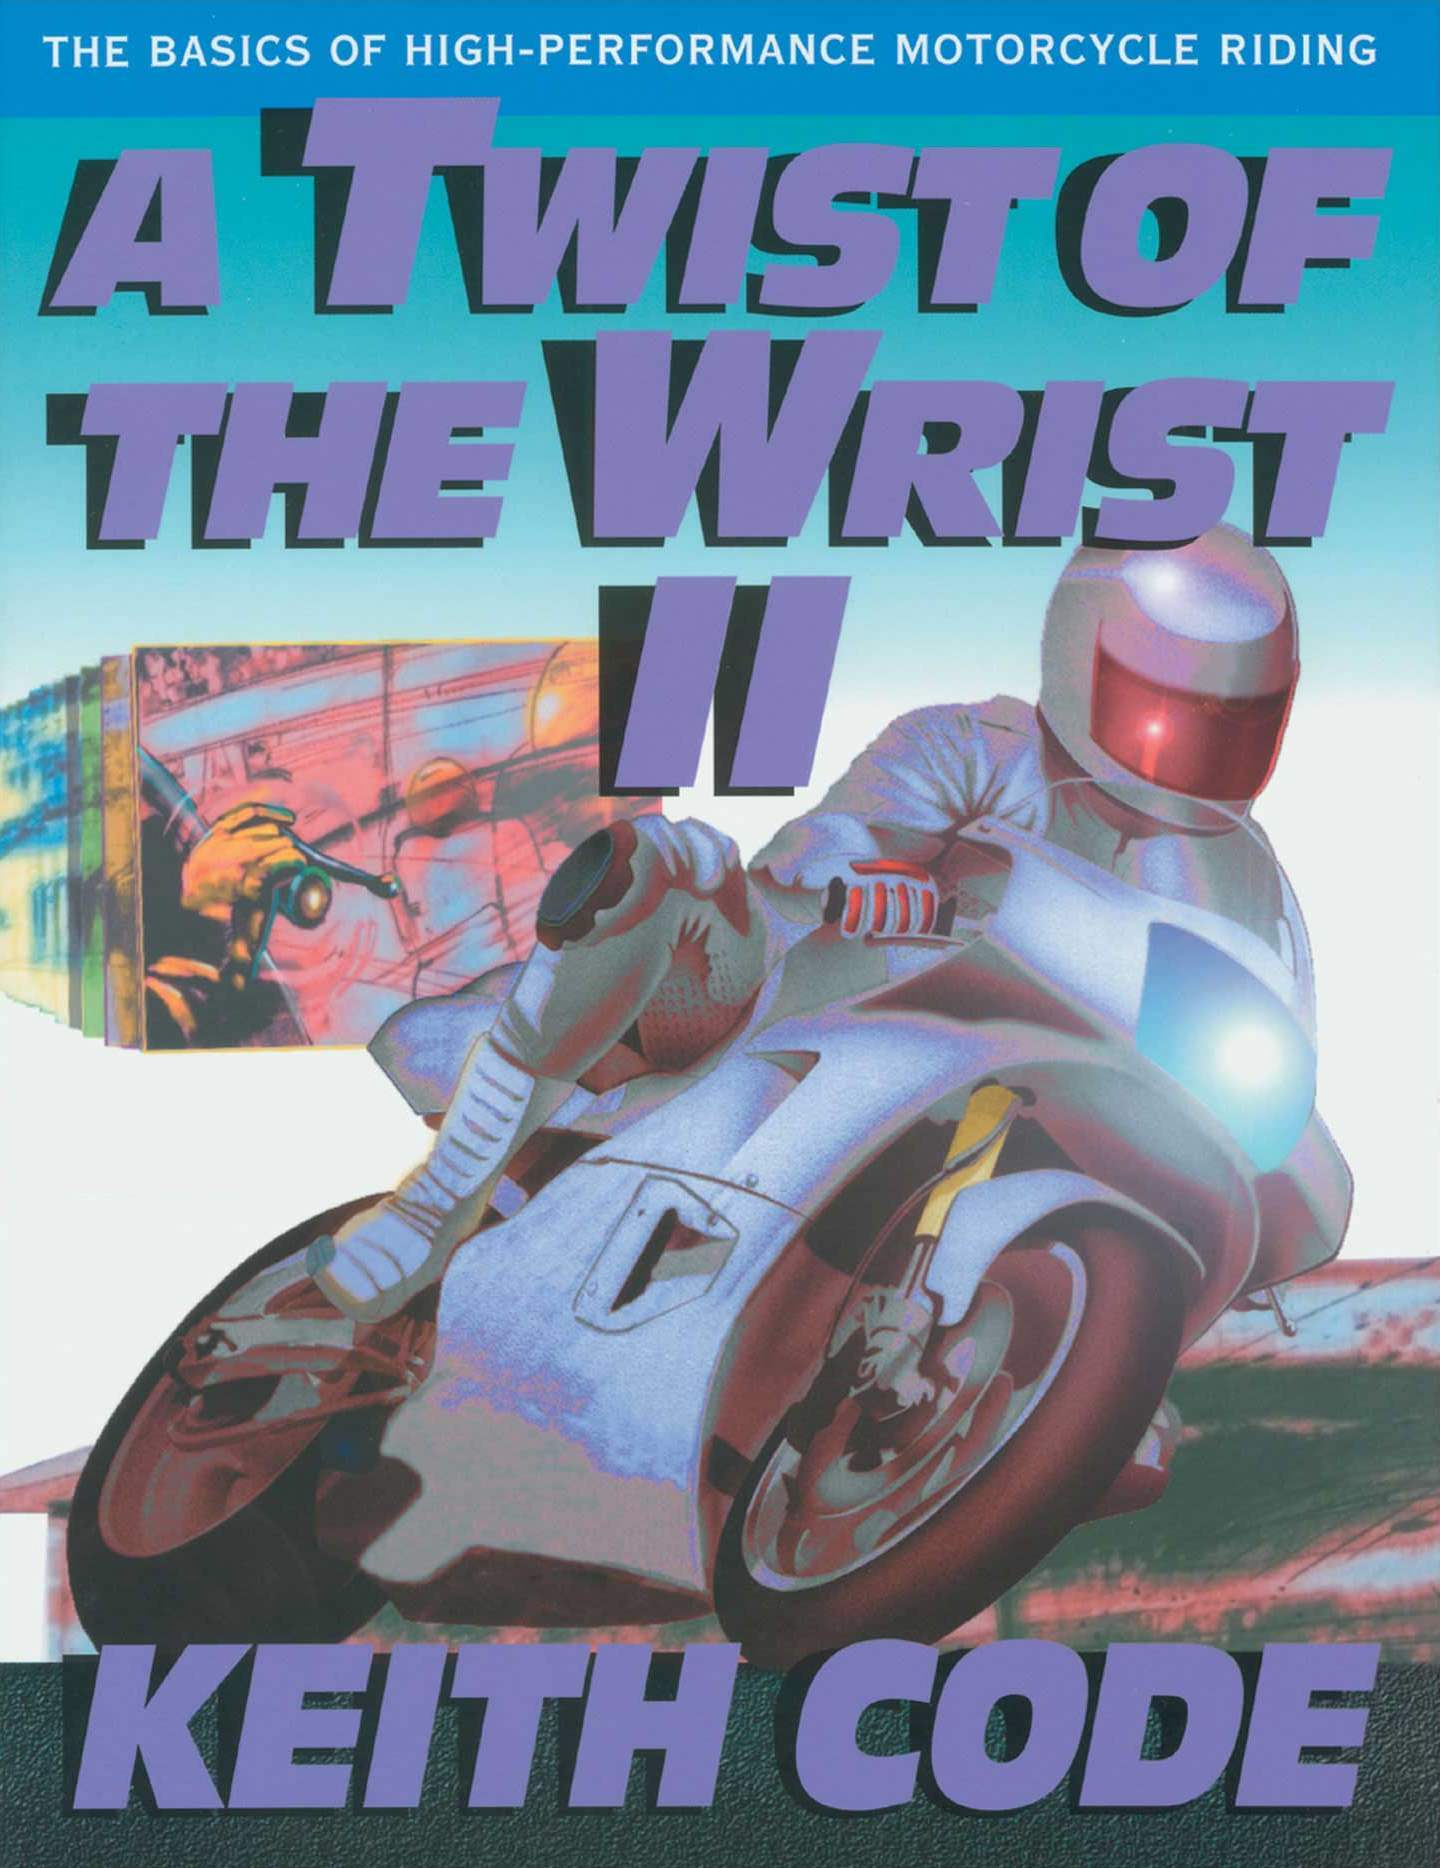 A Twist of the Wrist: Vol. II is a thorough DVD on how to handle your motorcycle like a Superbike rider.